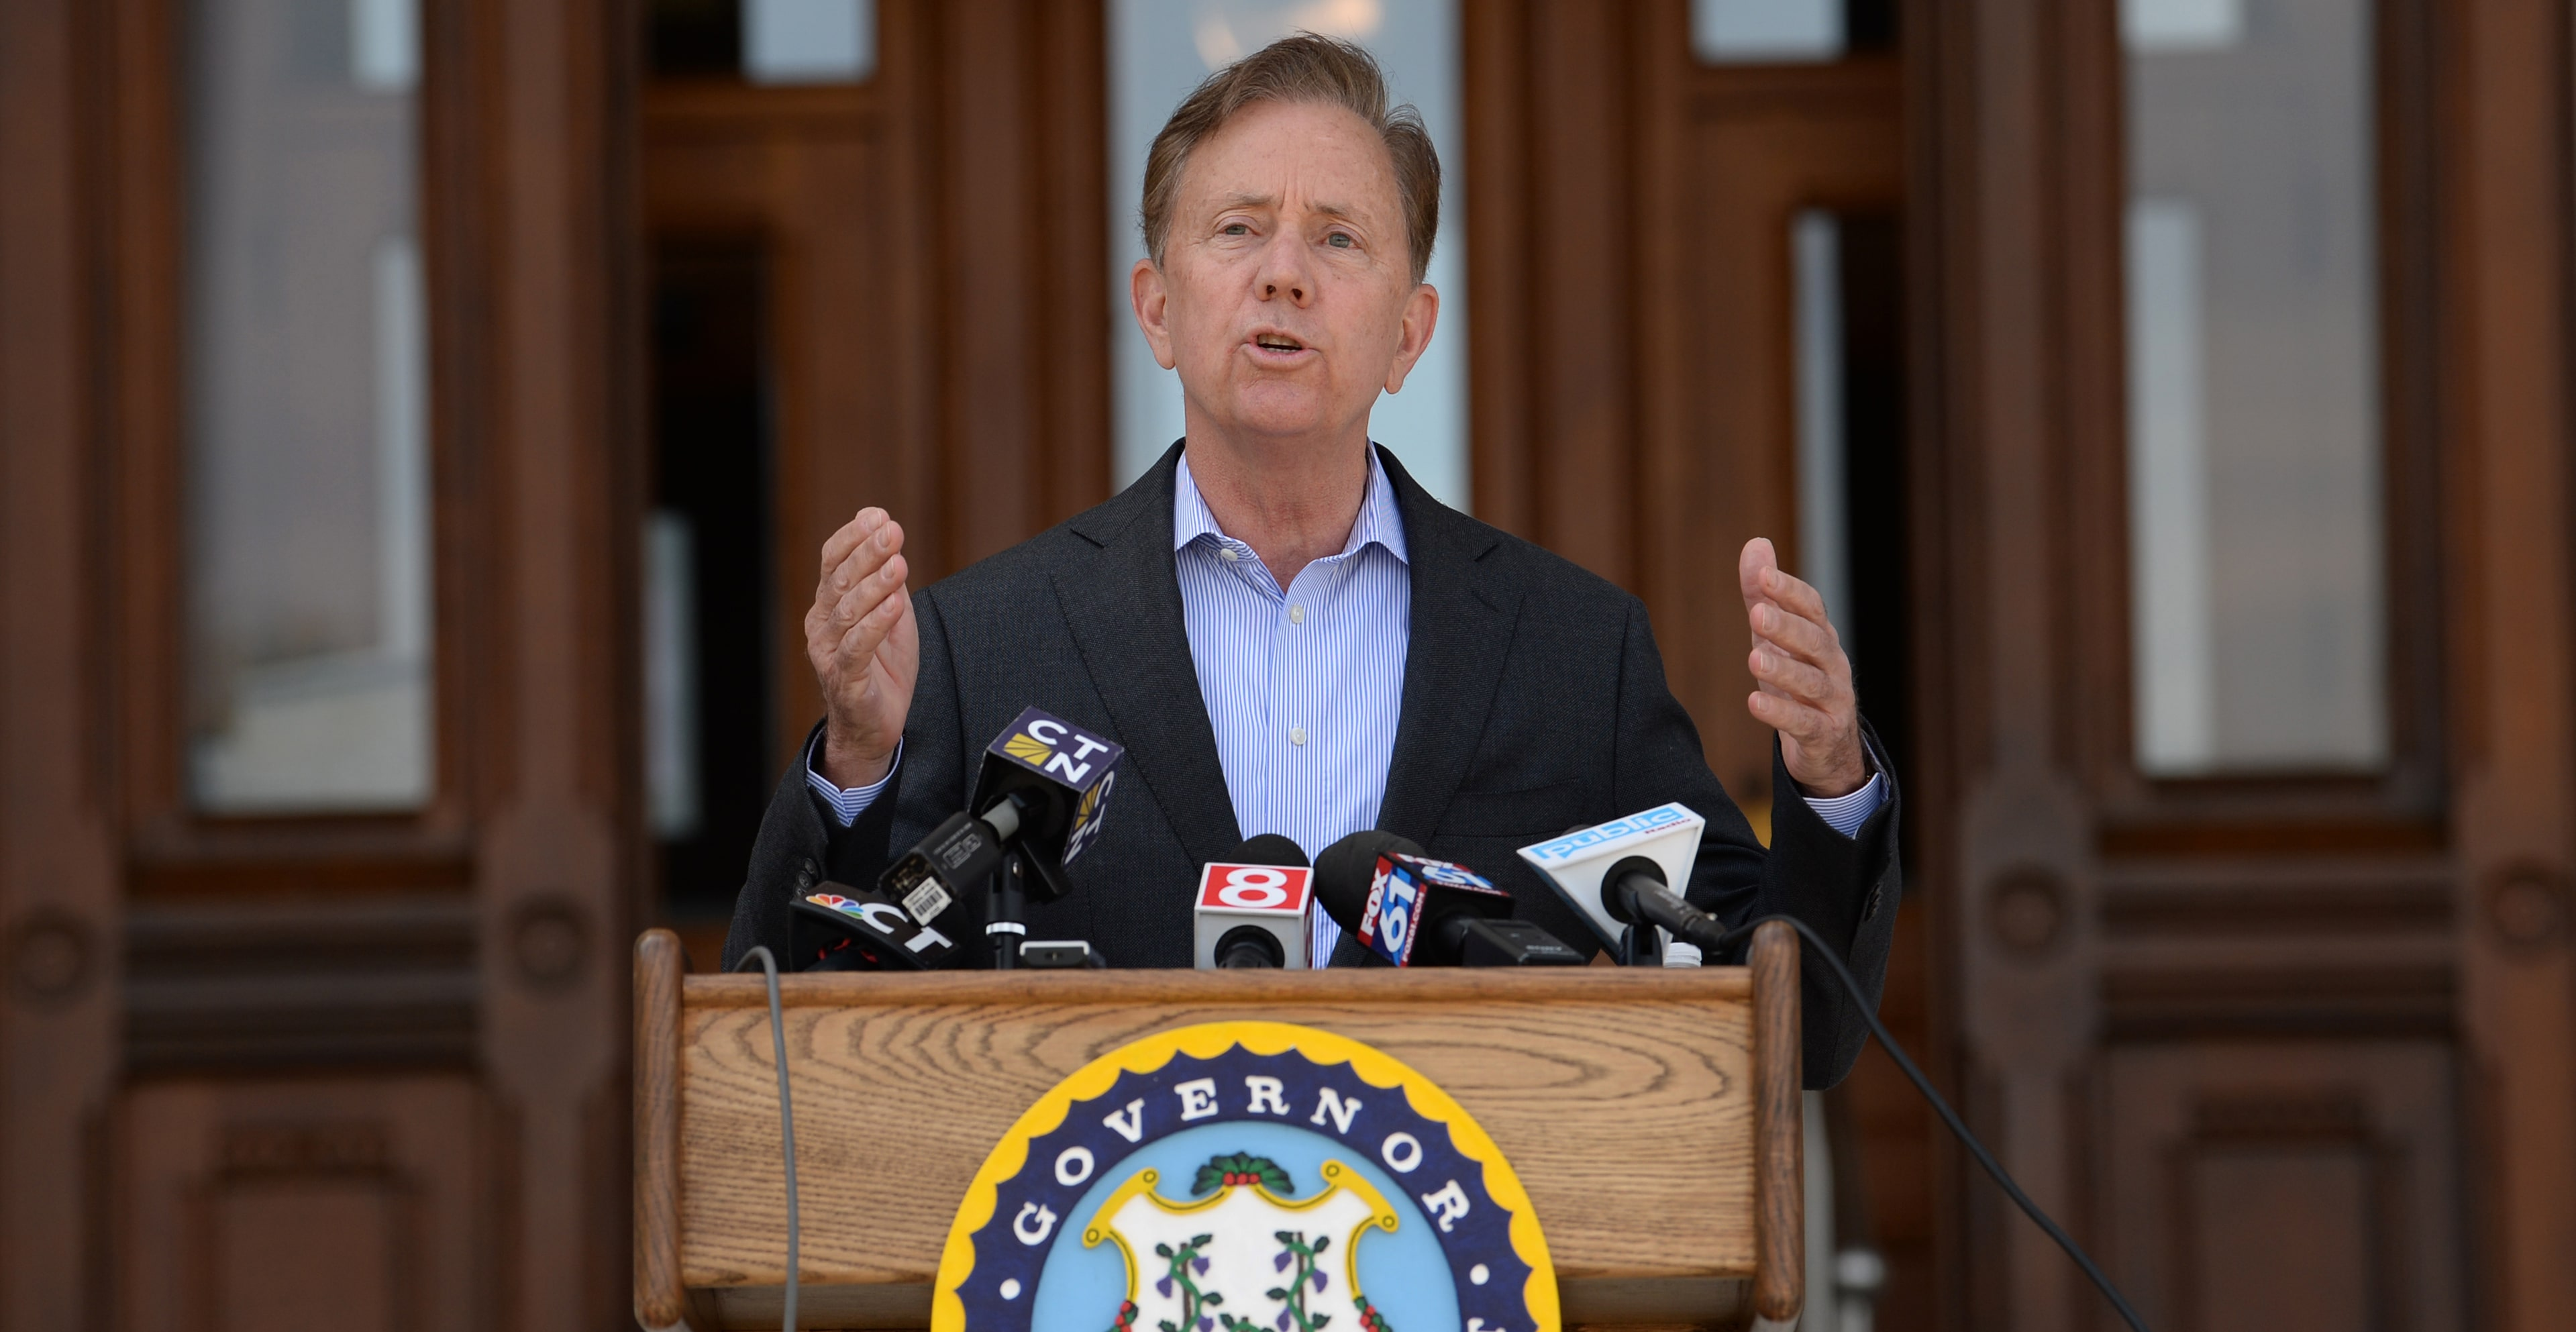 The governor must re-engage the legislature to reopen the state